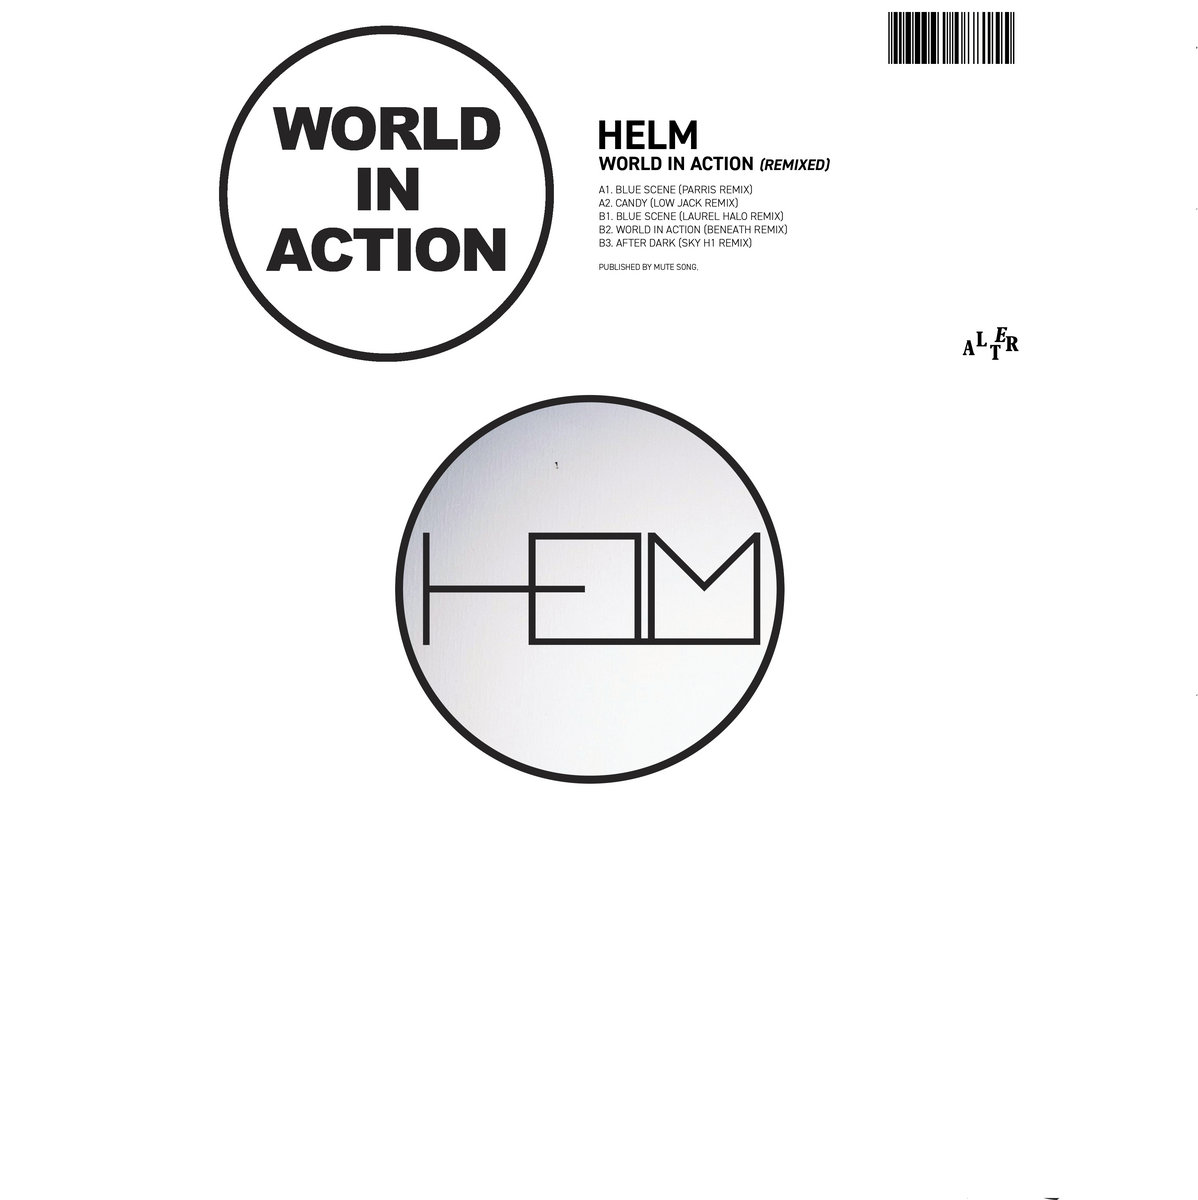 World In Action (Beneath Remix) | Helm